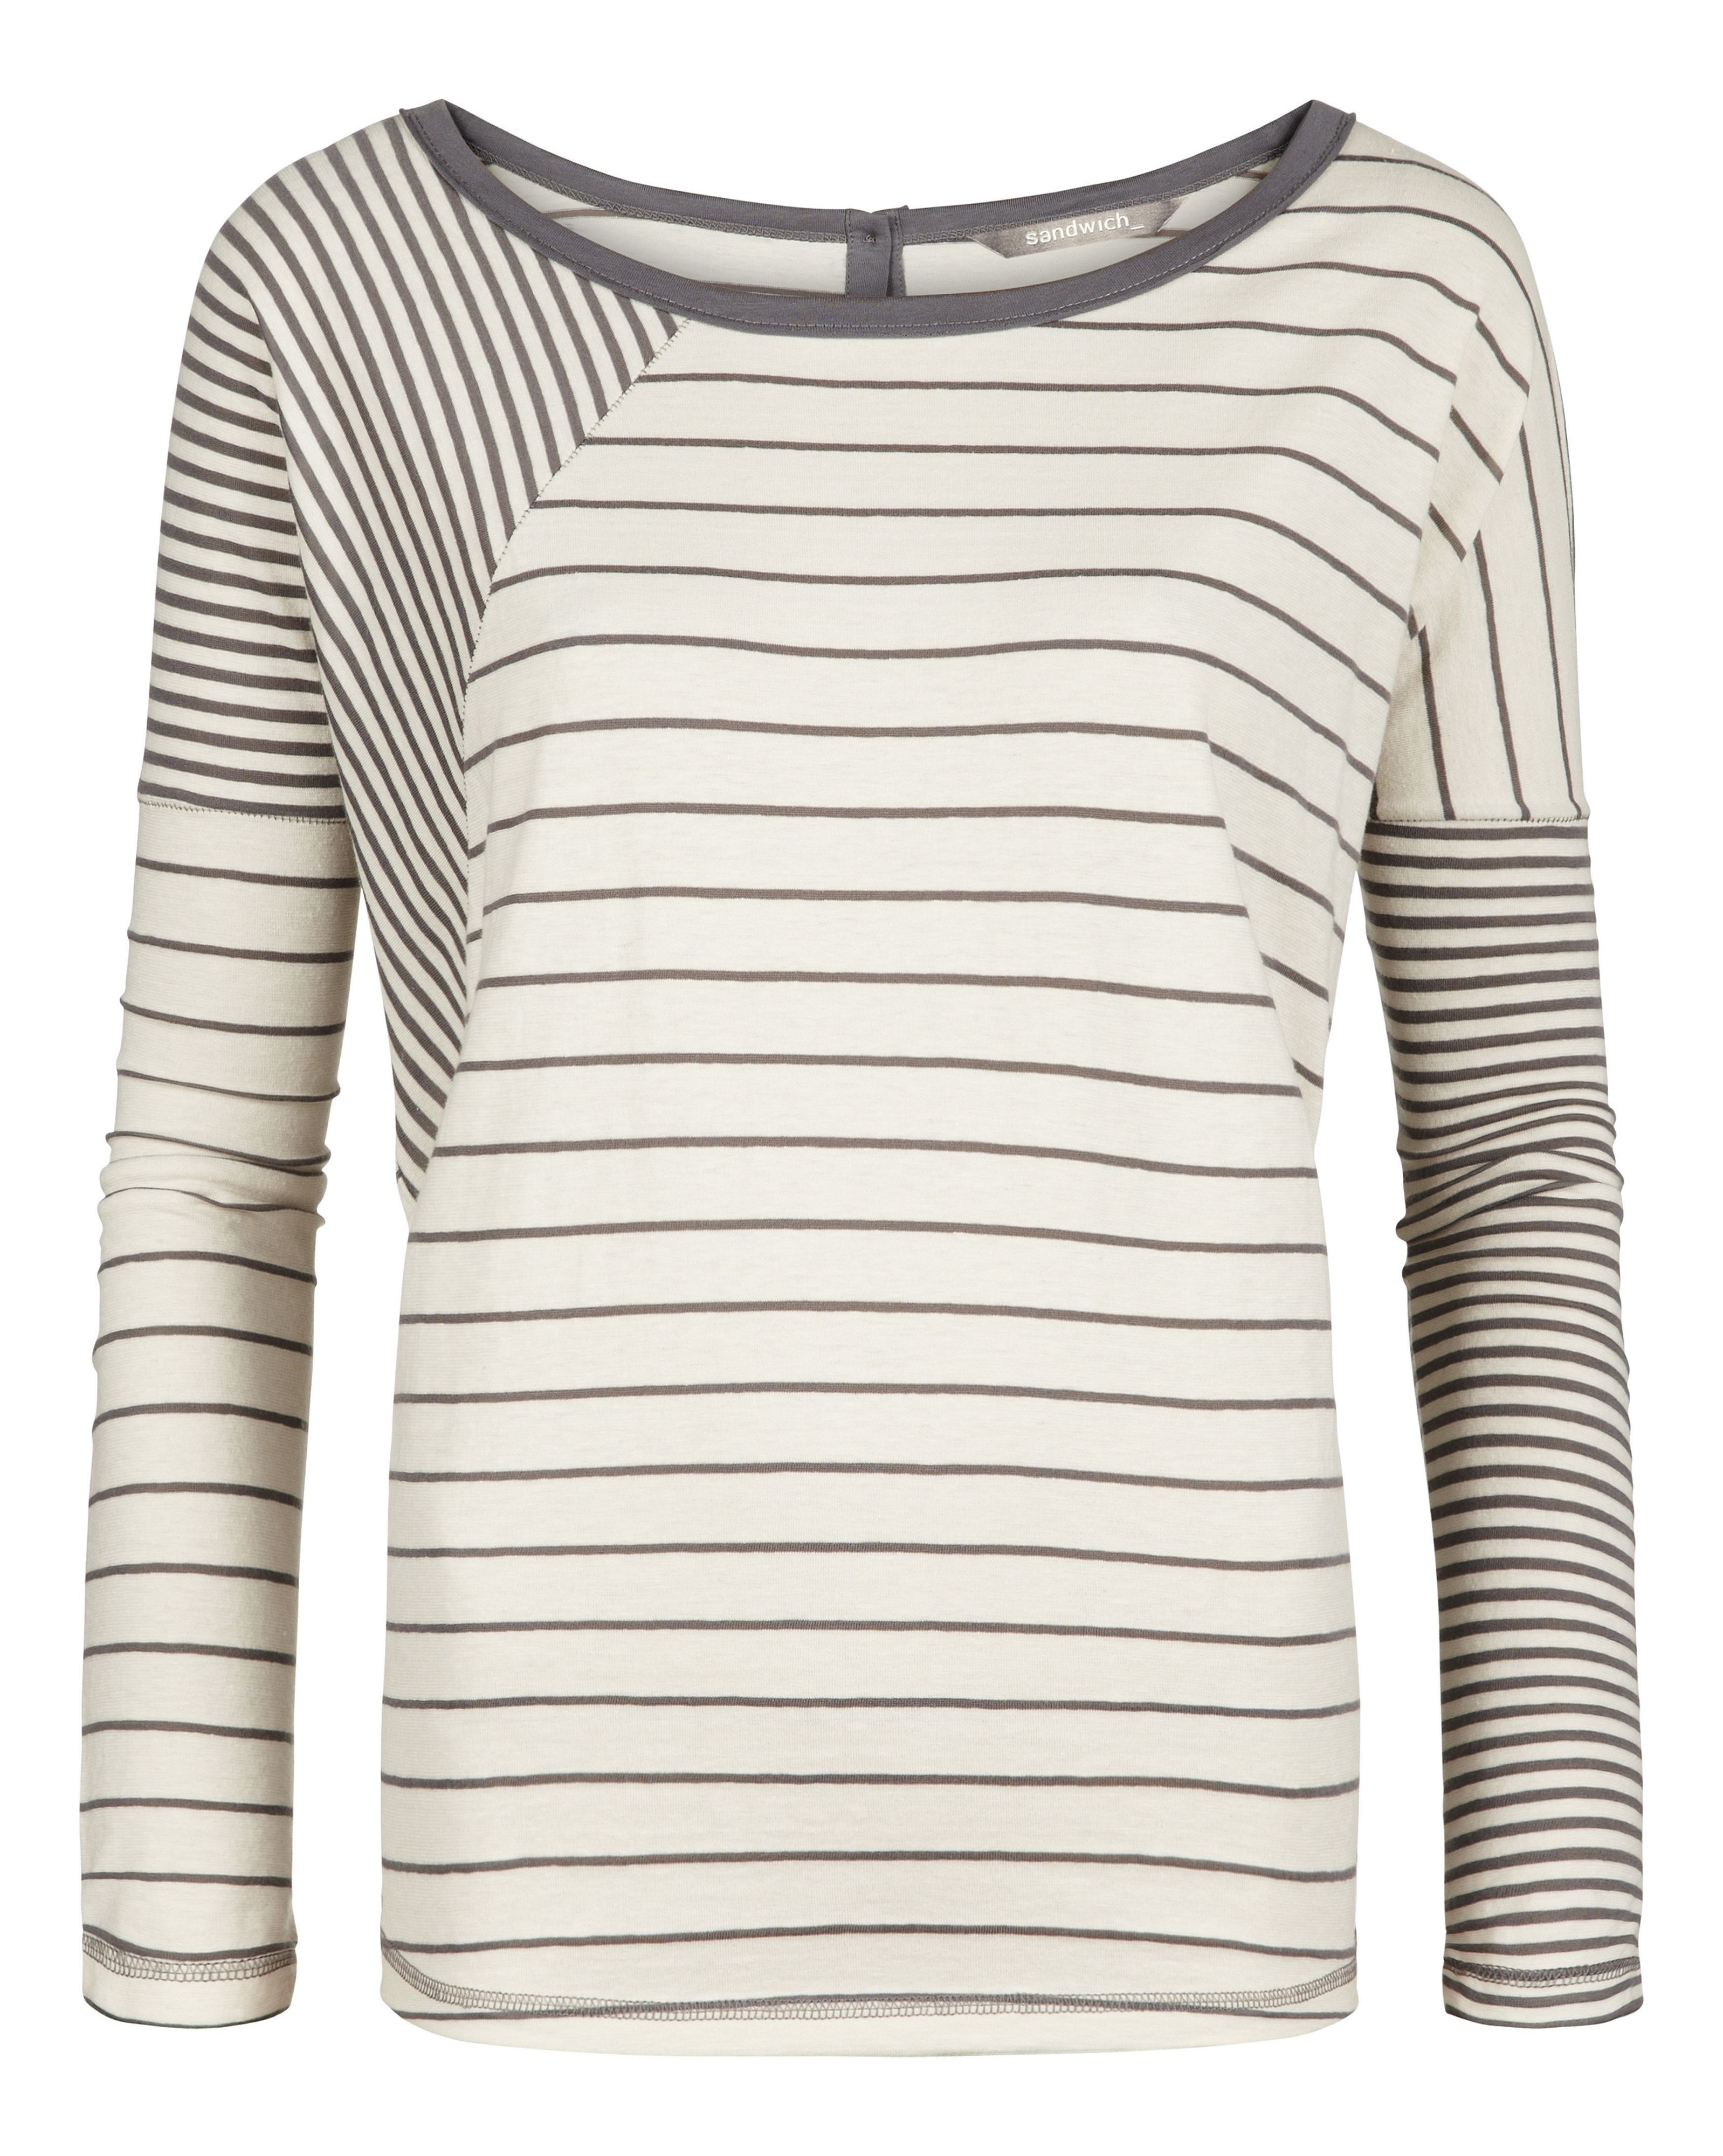 Stripped cotton top